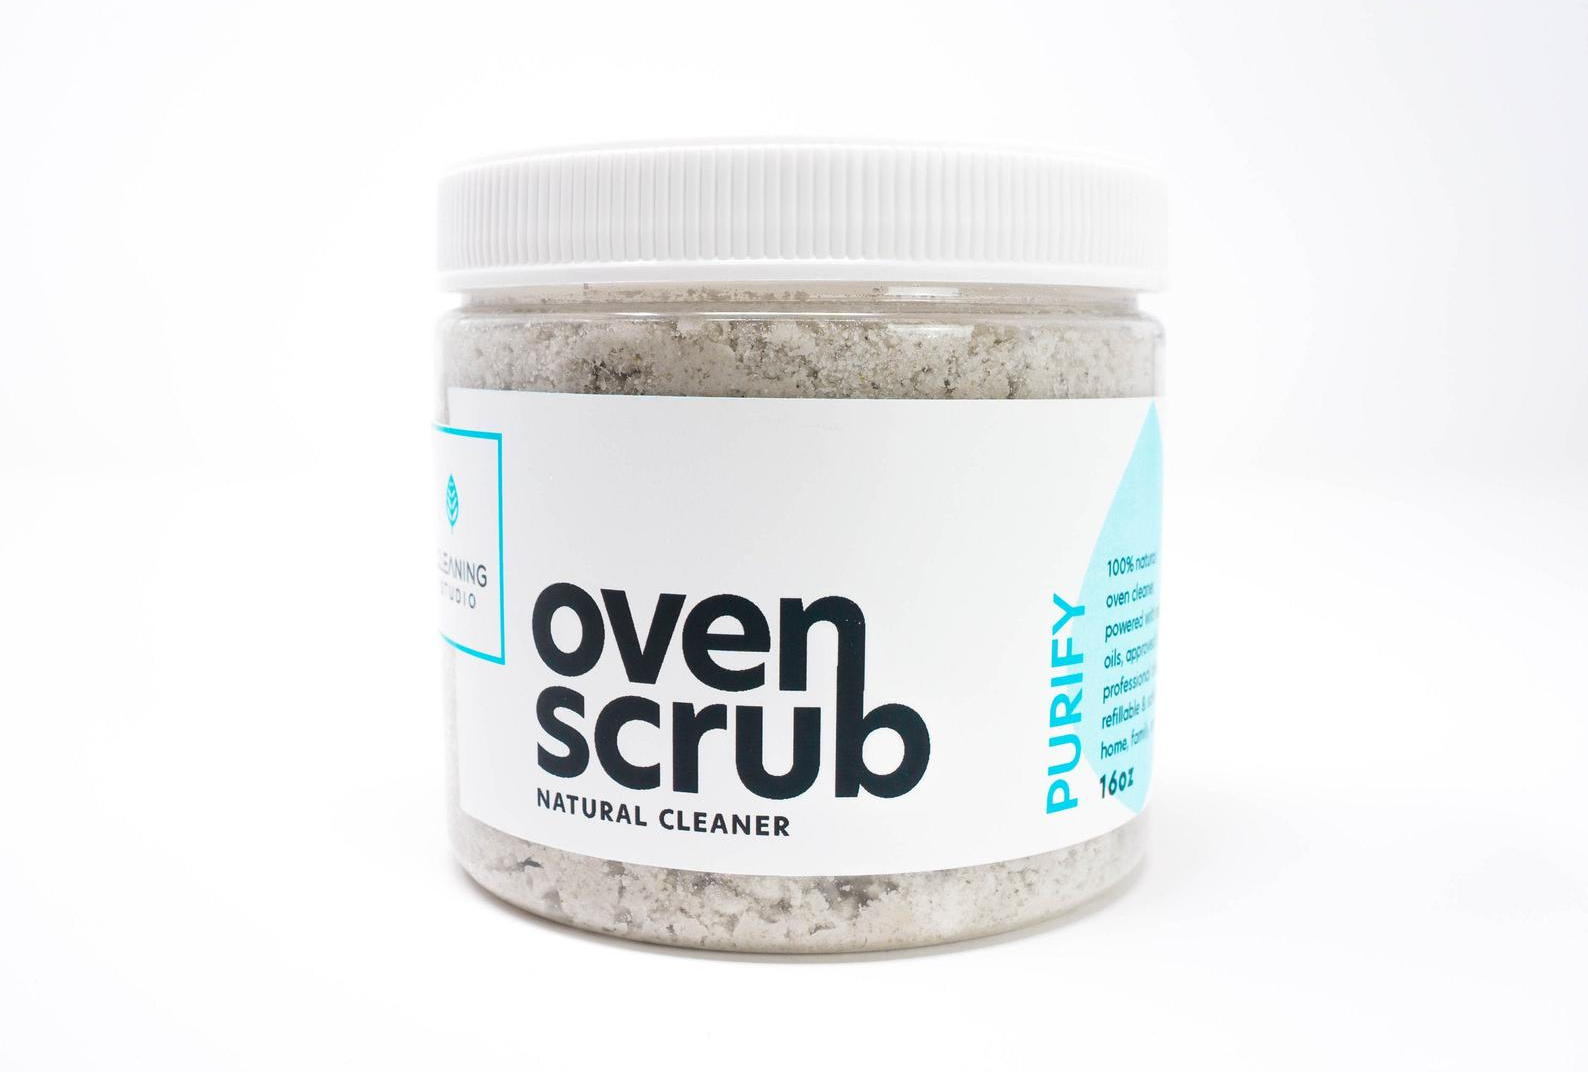 tub of oven scrub natural cleaner